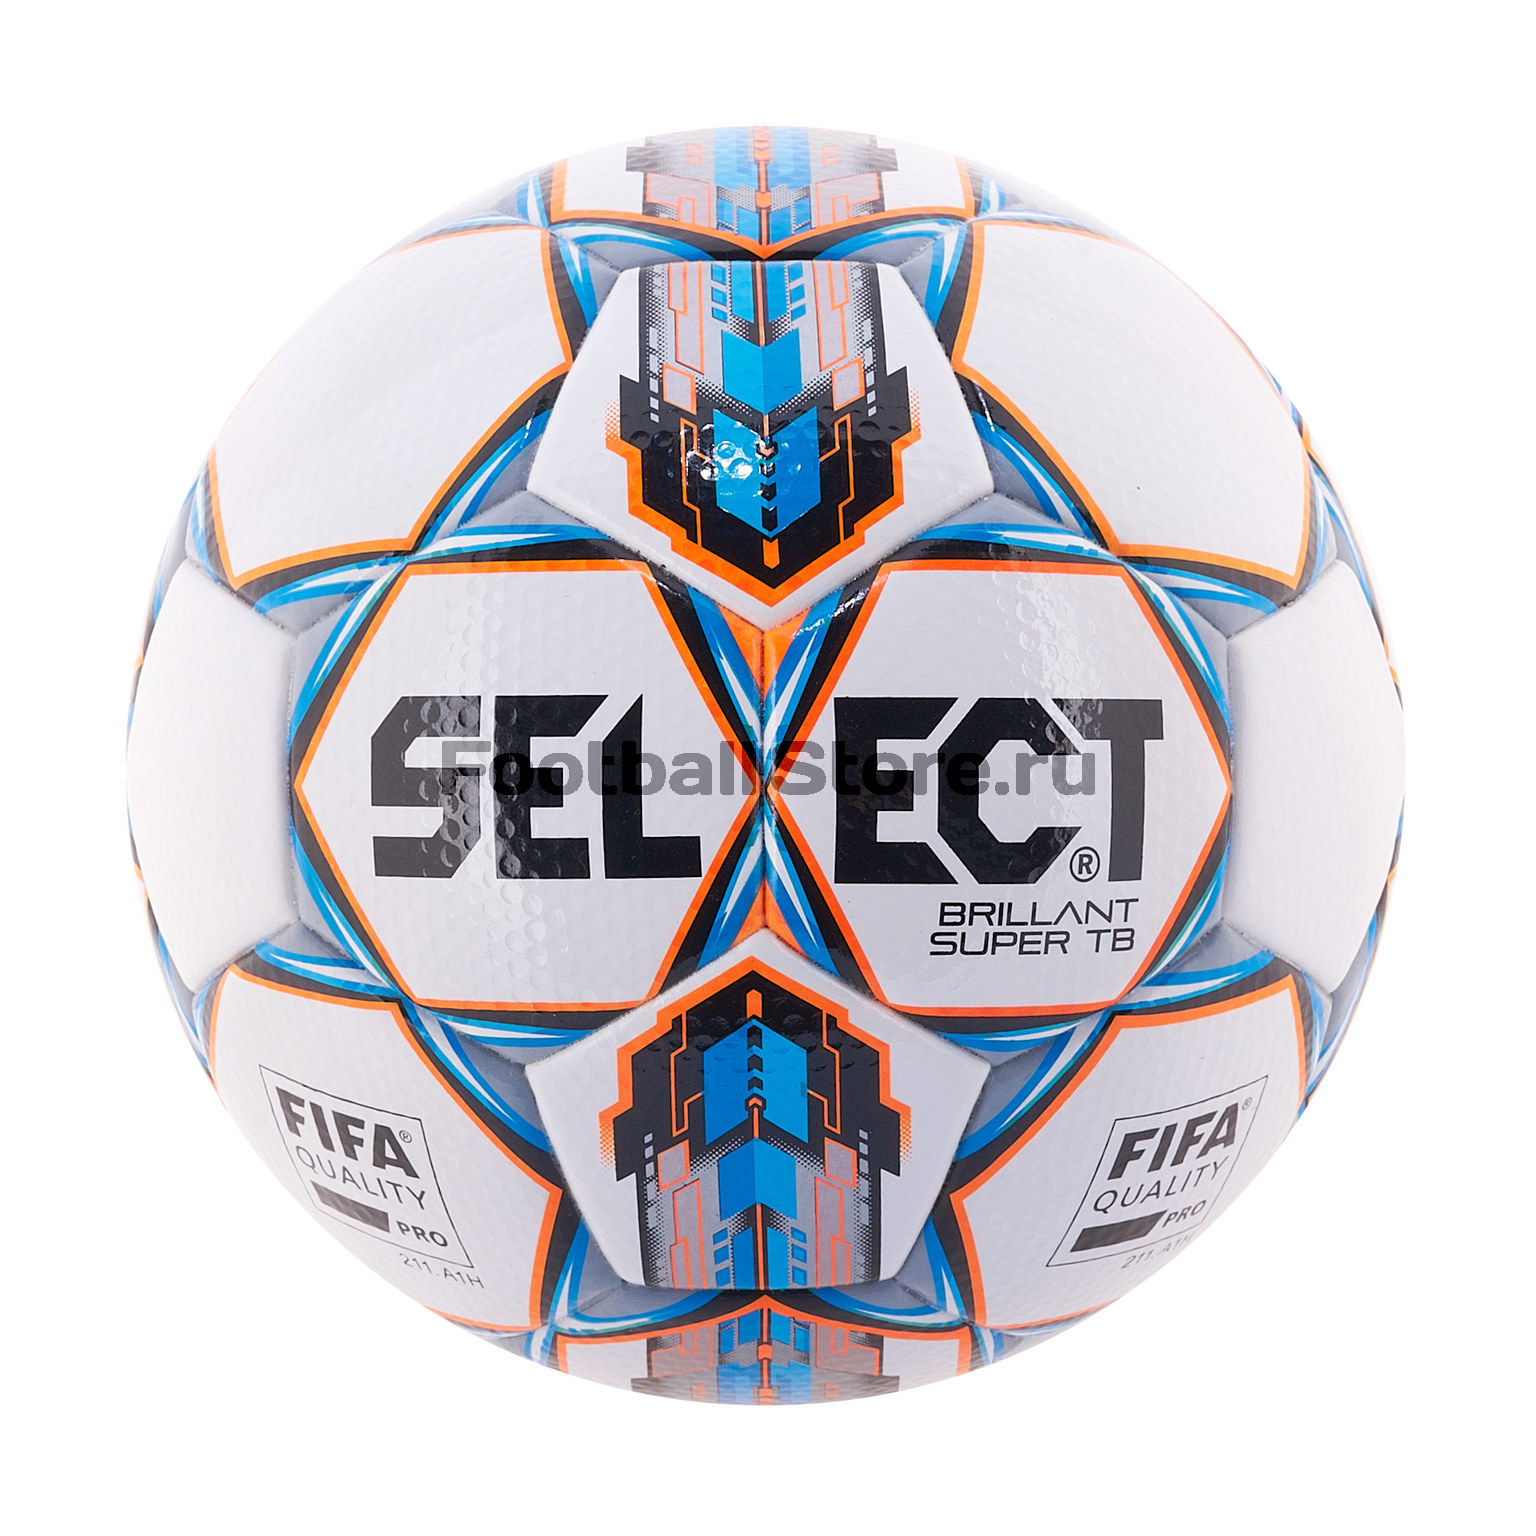 Мяч Select Brillant Super FIFA TB 810316-002 футбольный мяч select super league амфр рфс fifa 850717